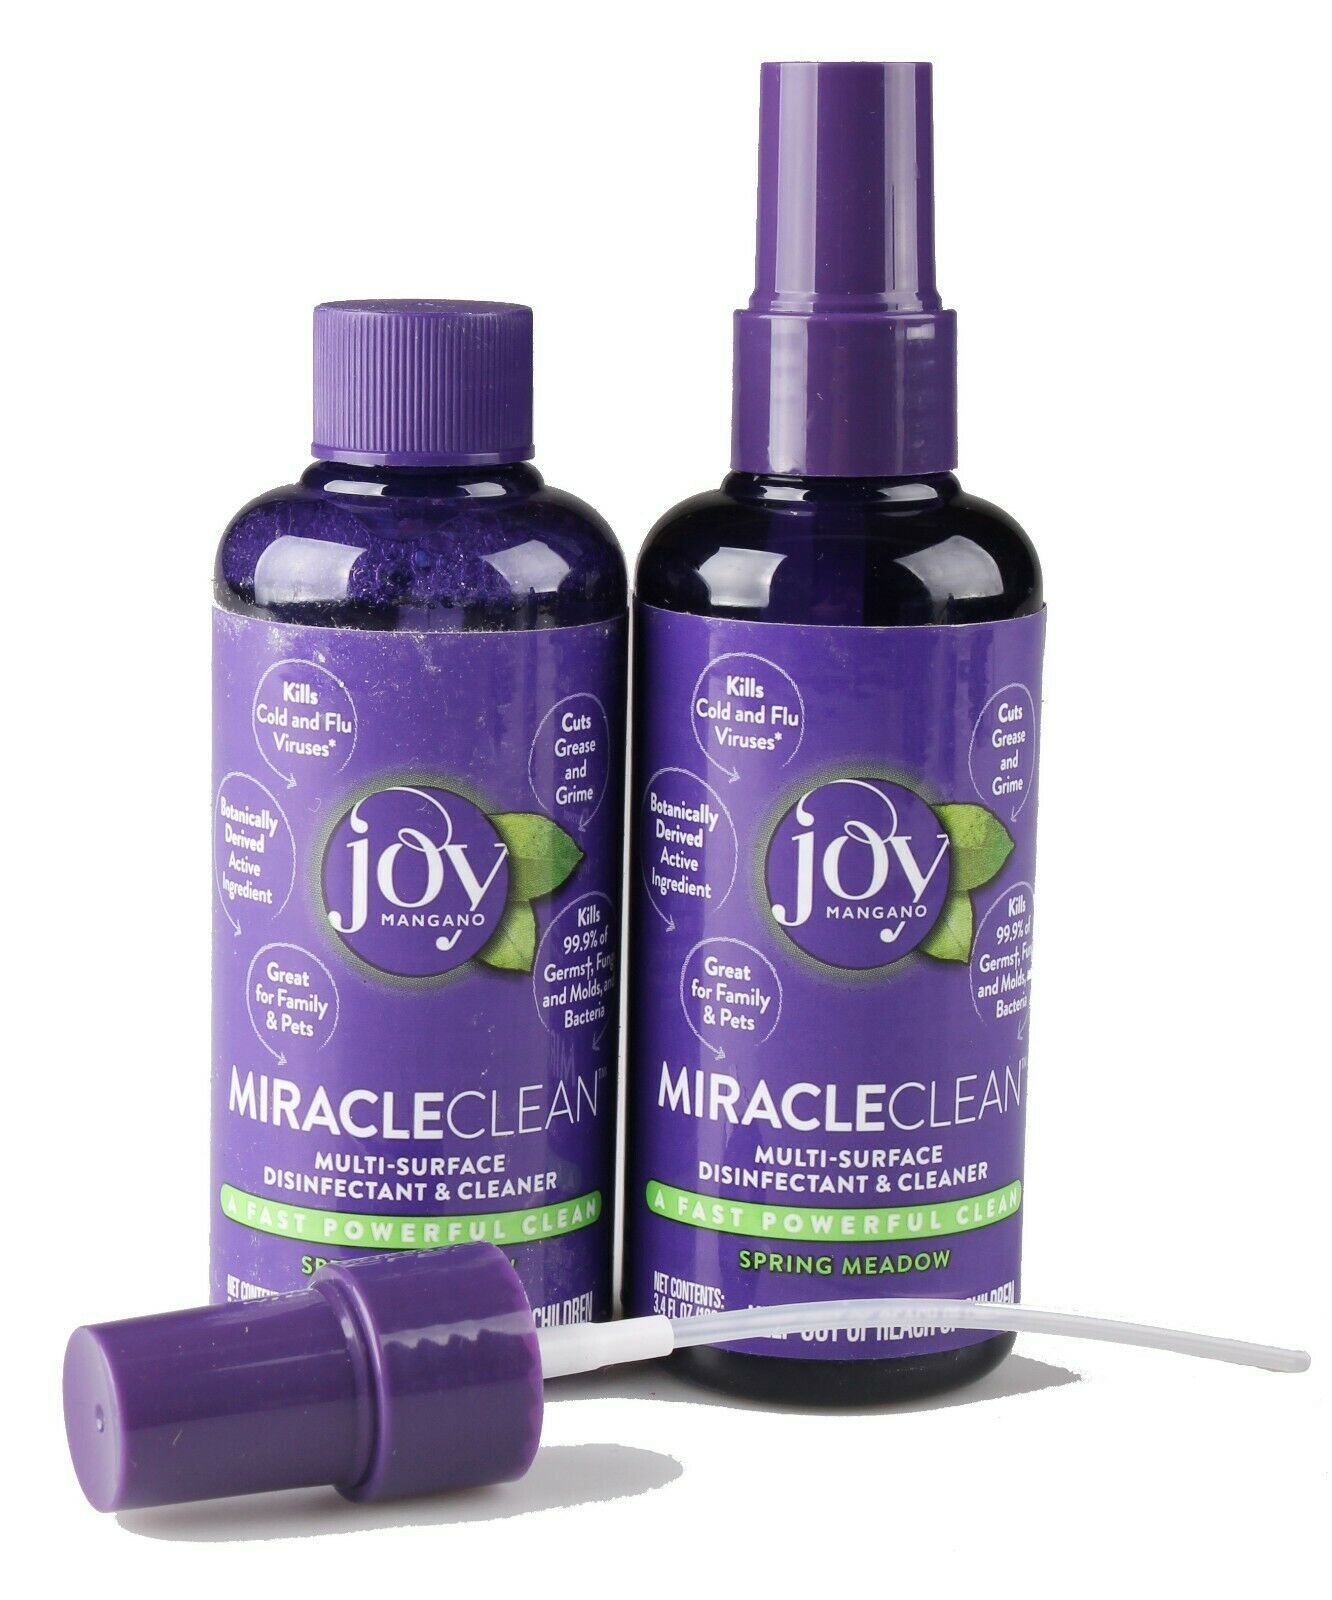 2x Joy Mangano MiracleClean Travel Size Disinfectant Cleaner Set Spring Meadow